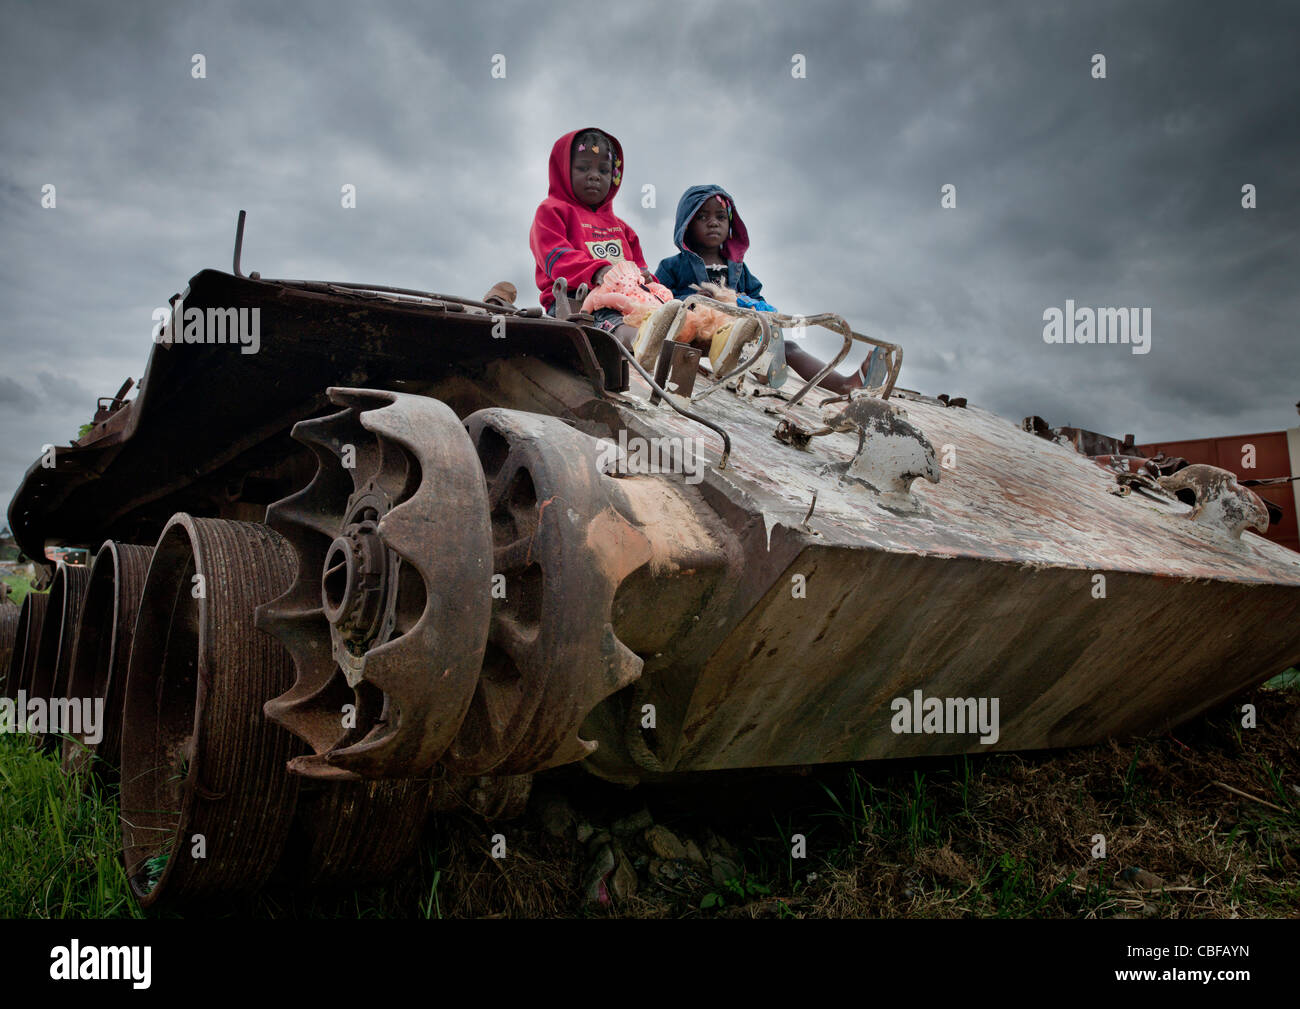 Kids On A Tank Wreck From Civil War, Angola - Stock Image